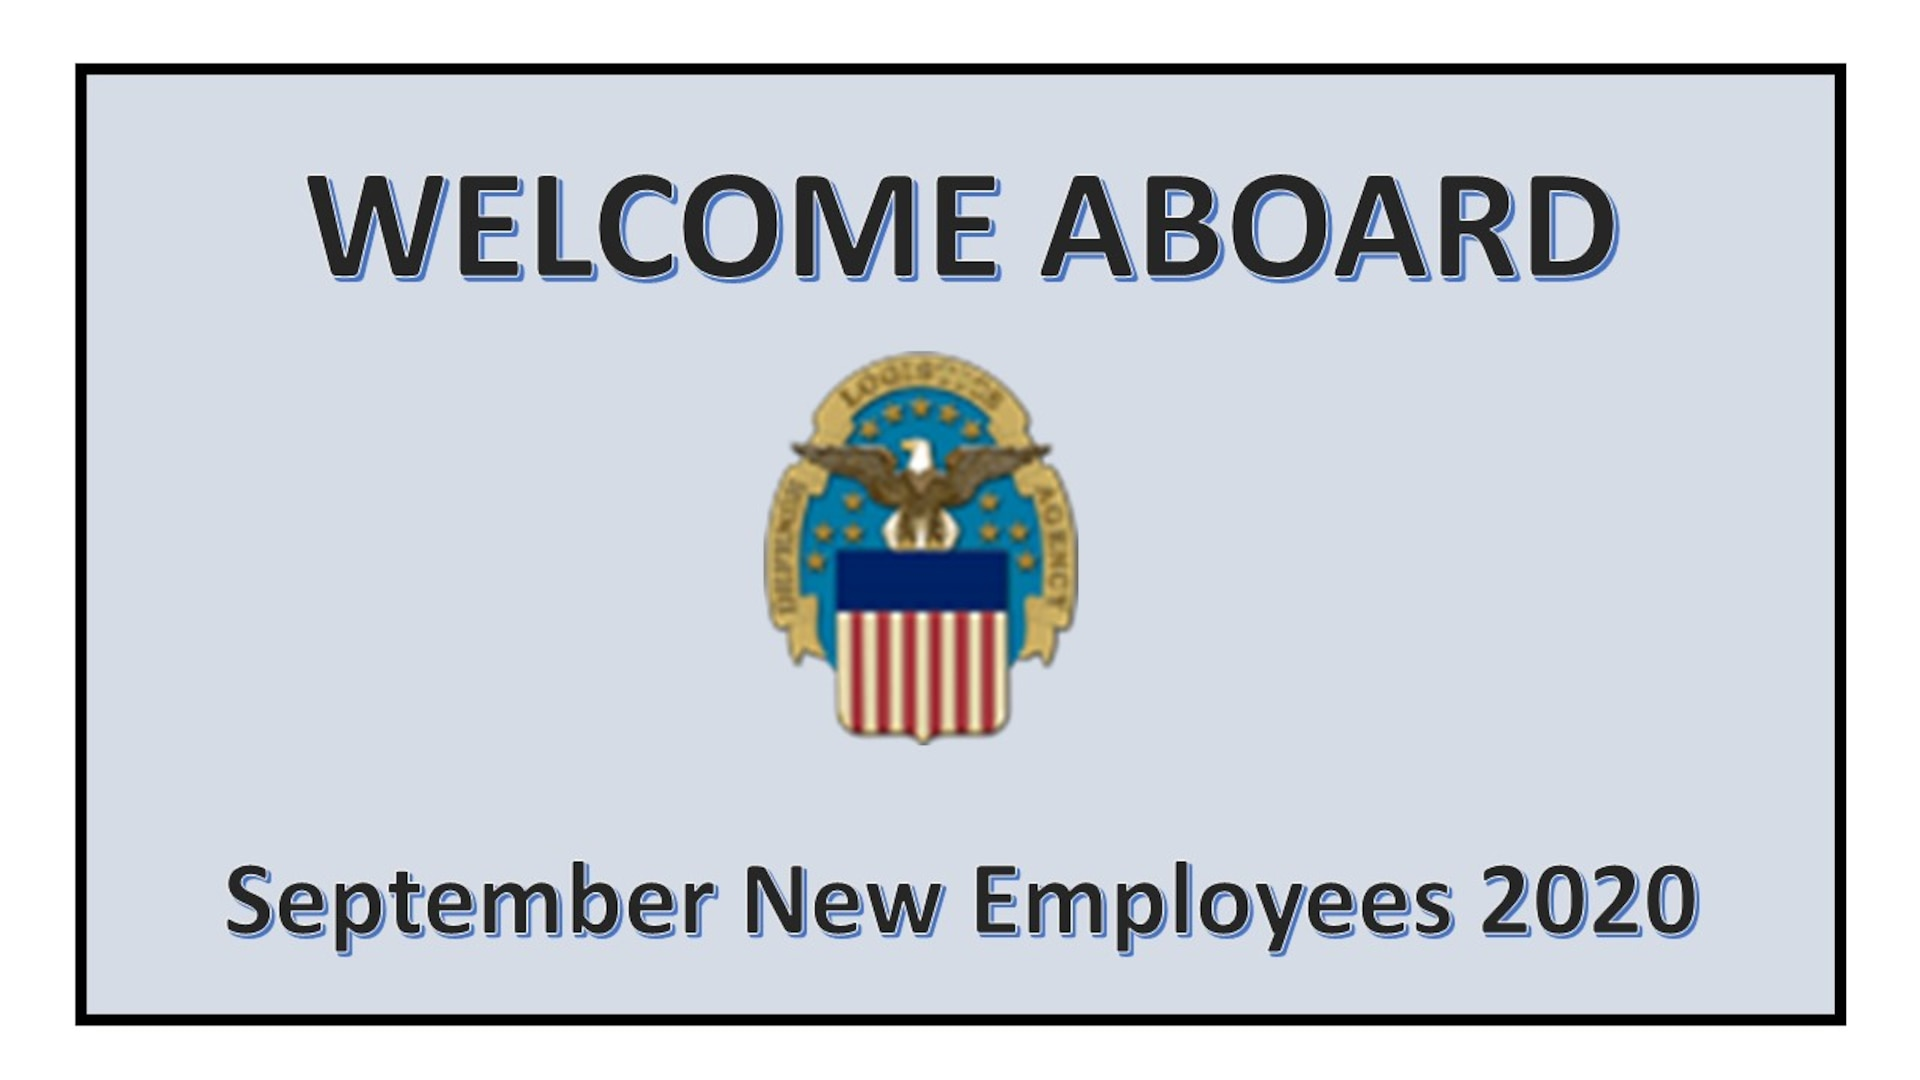 Picture of PowerPoint slide welcoming September 2020 new employees.